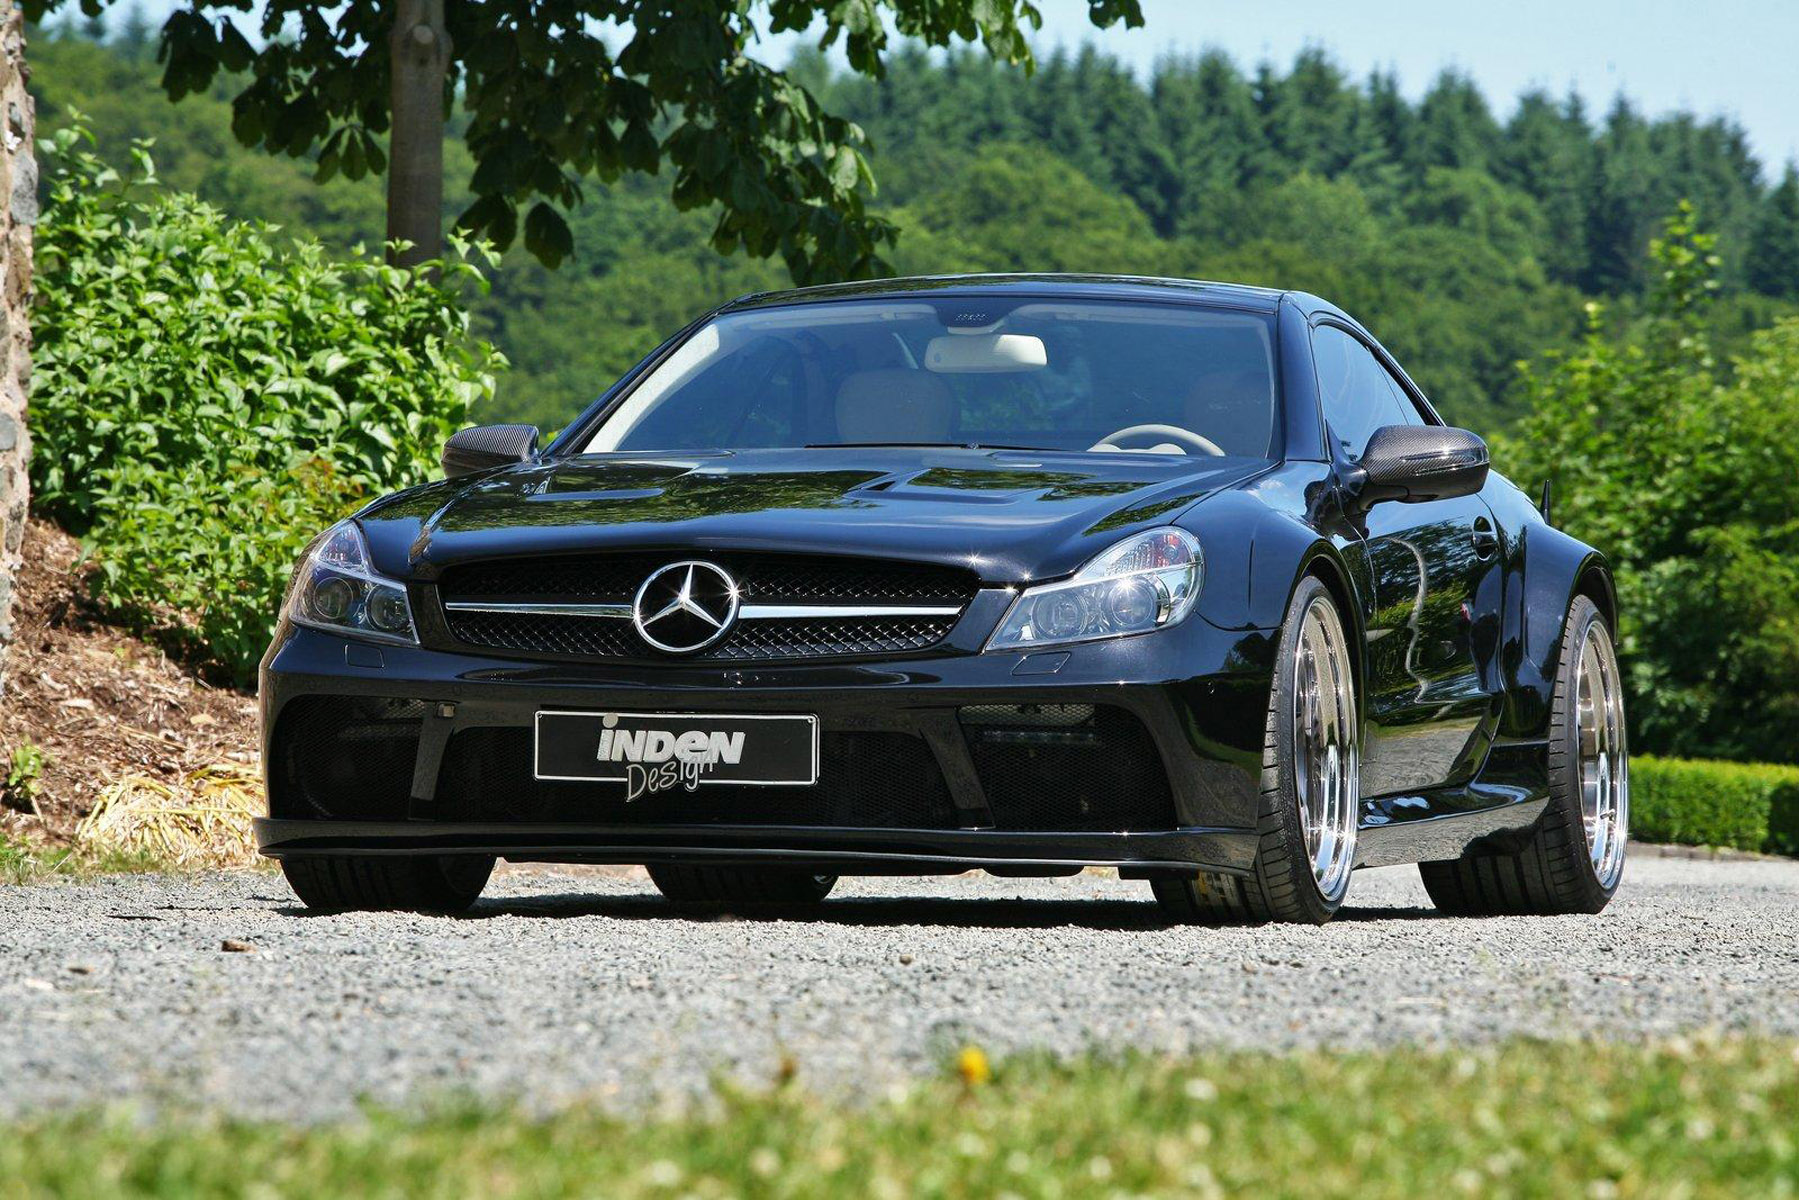 Image gallery 2010 sl63 amg for 2010 mercedes benz sl550